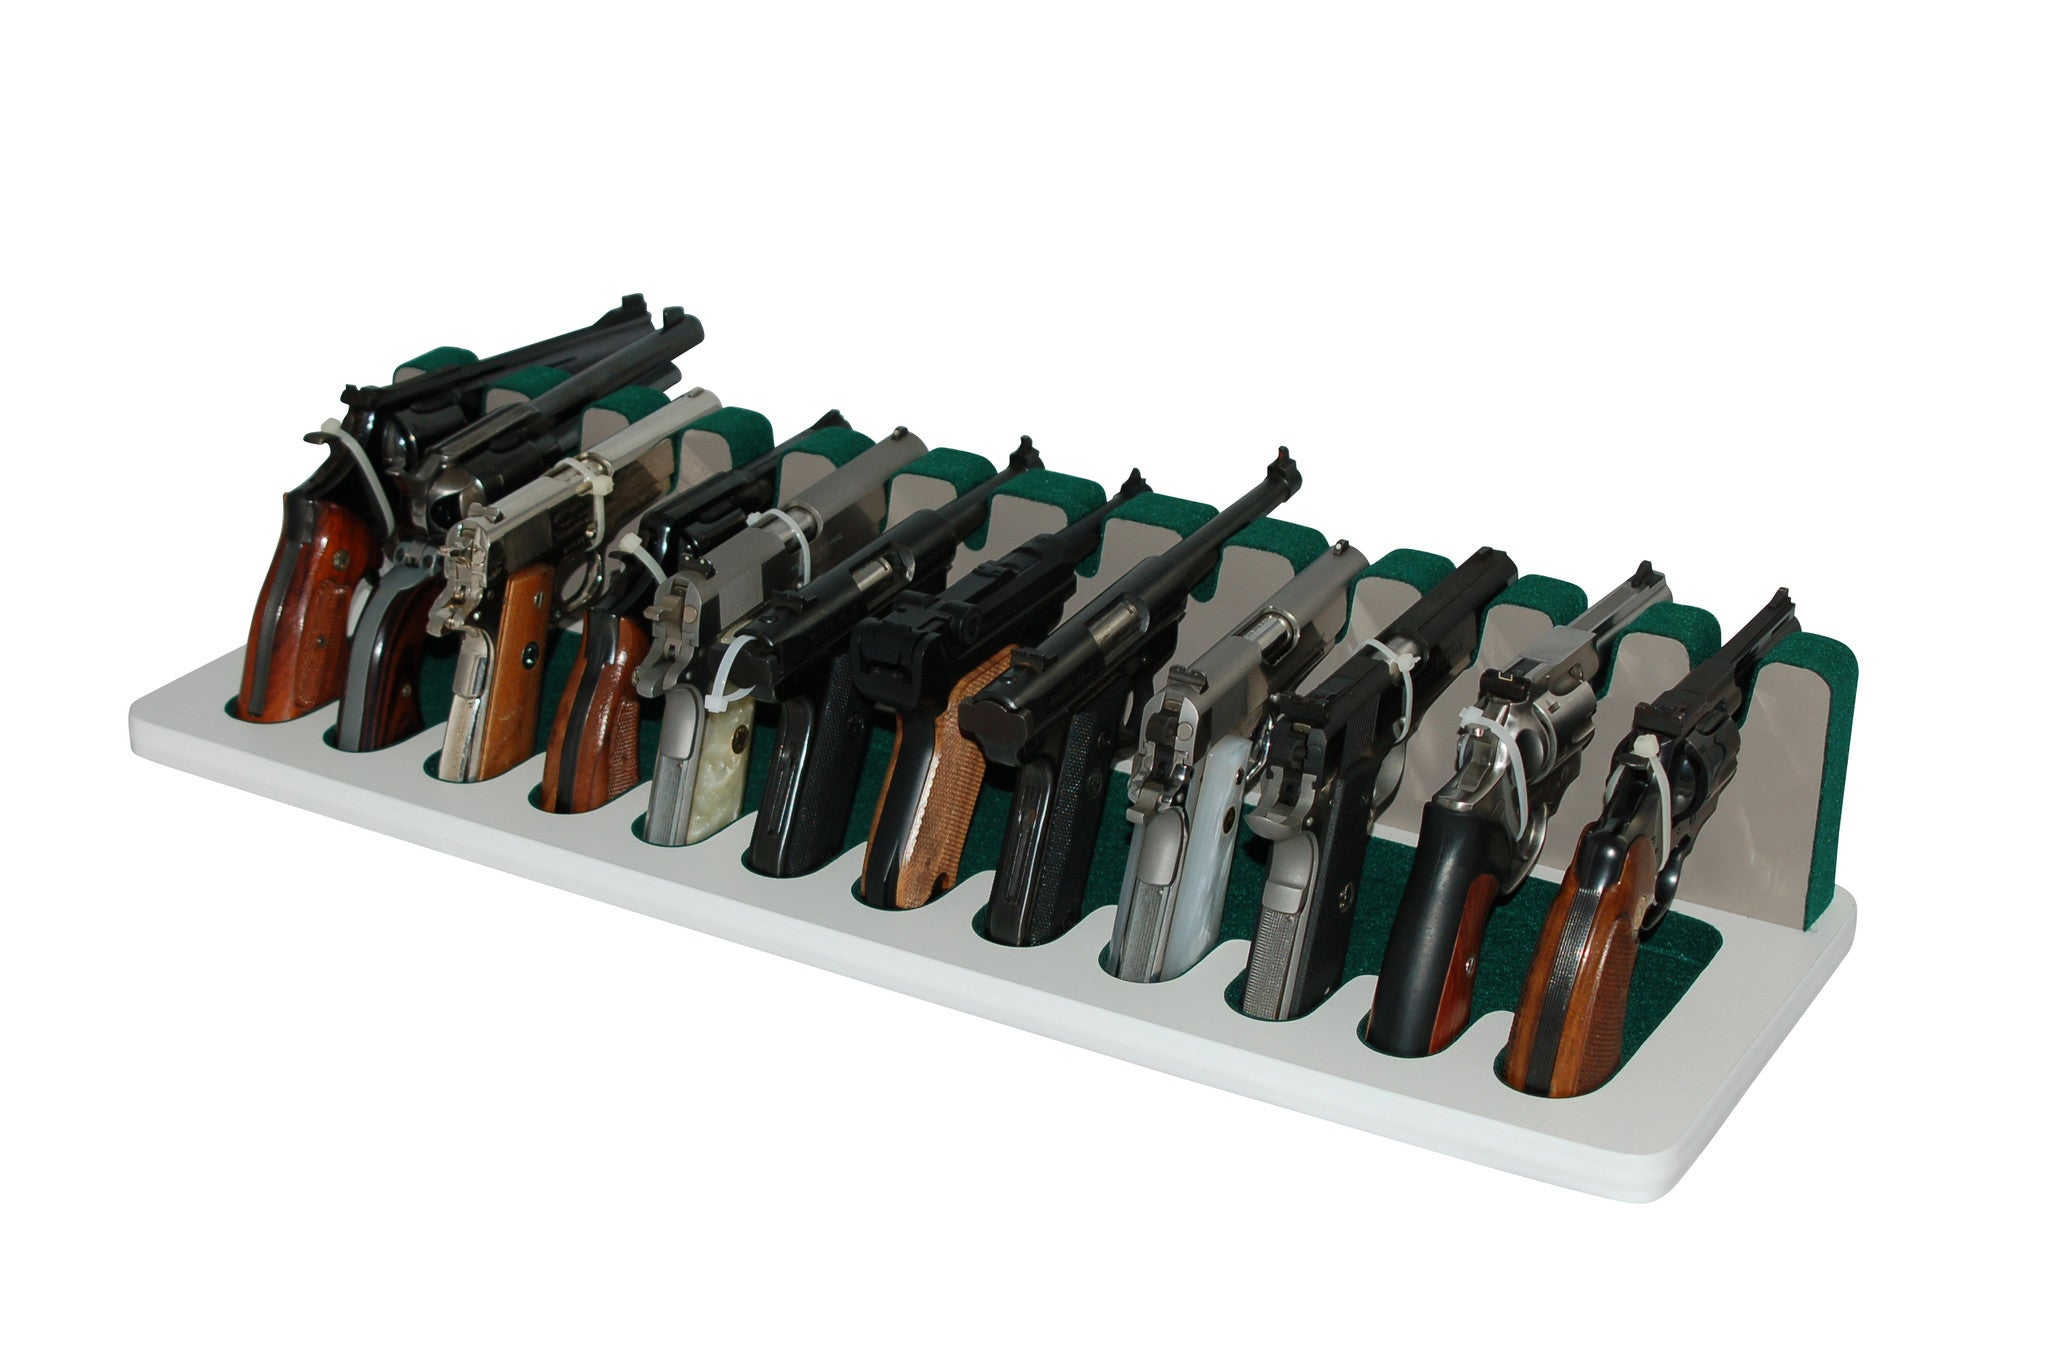 12 Slot Pistol Stand - P12-04 - Large Frame Revolvers and Semi ...